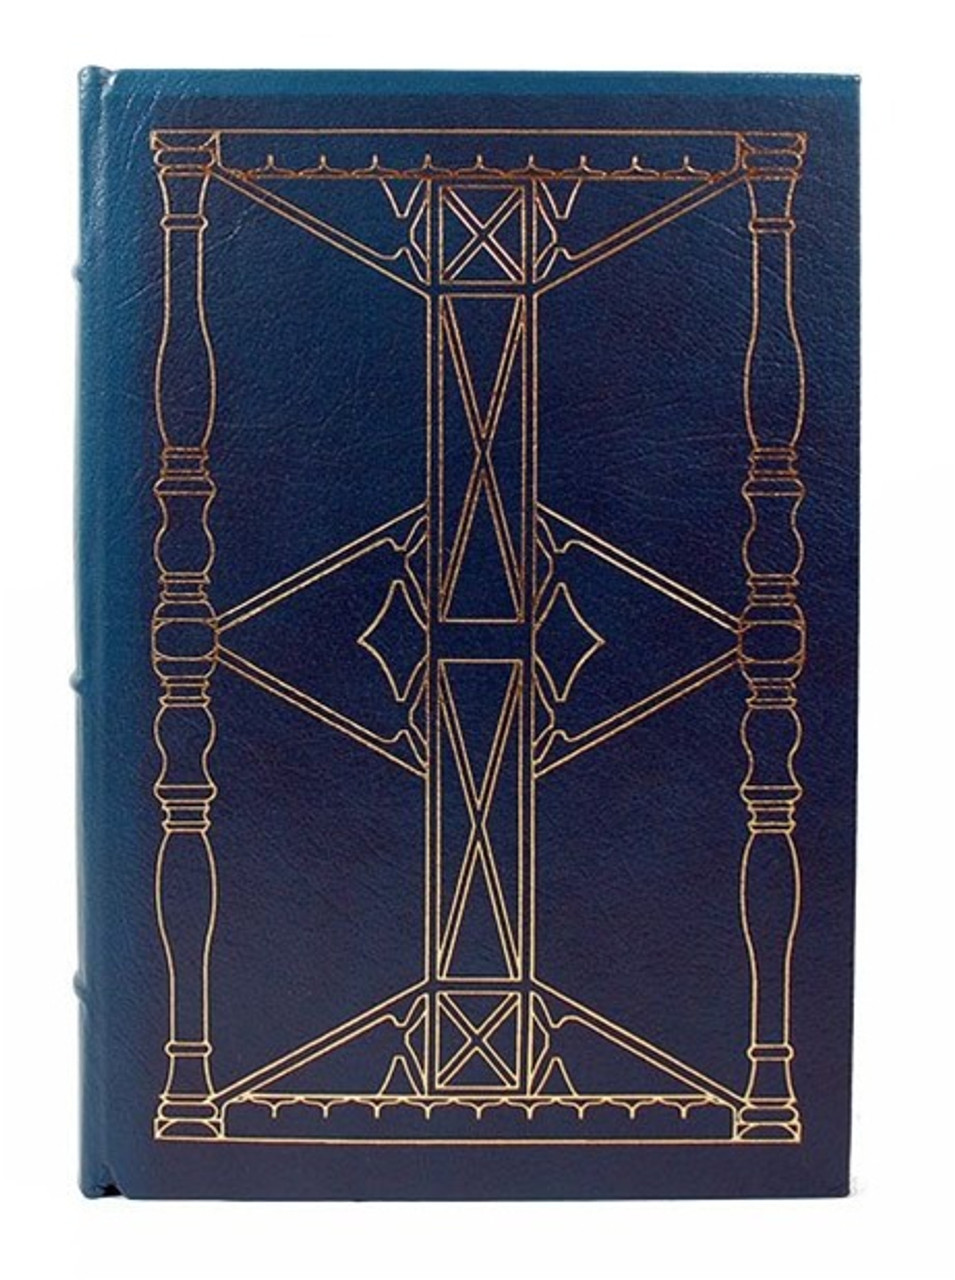 Easton Press 'Our Town' Leather Bound, by Thornton Wilder, Collector's Famous Editions